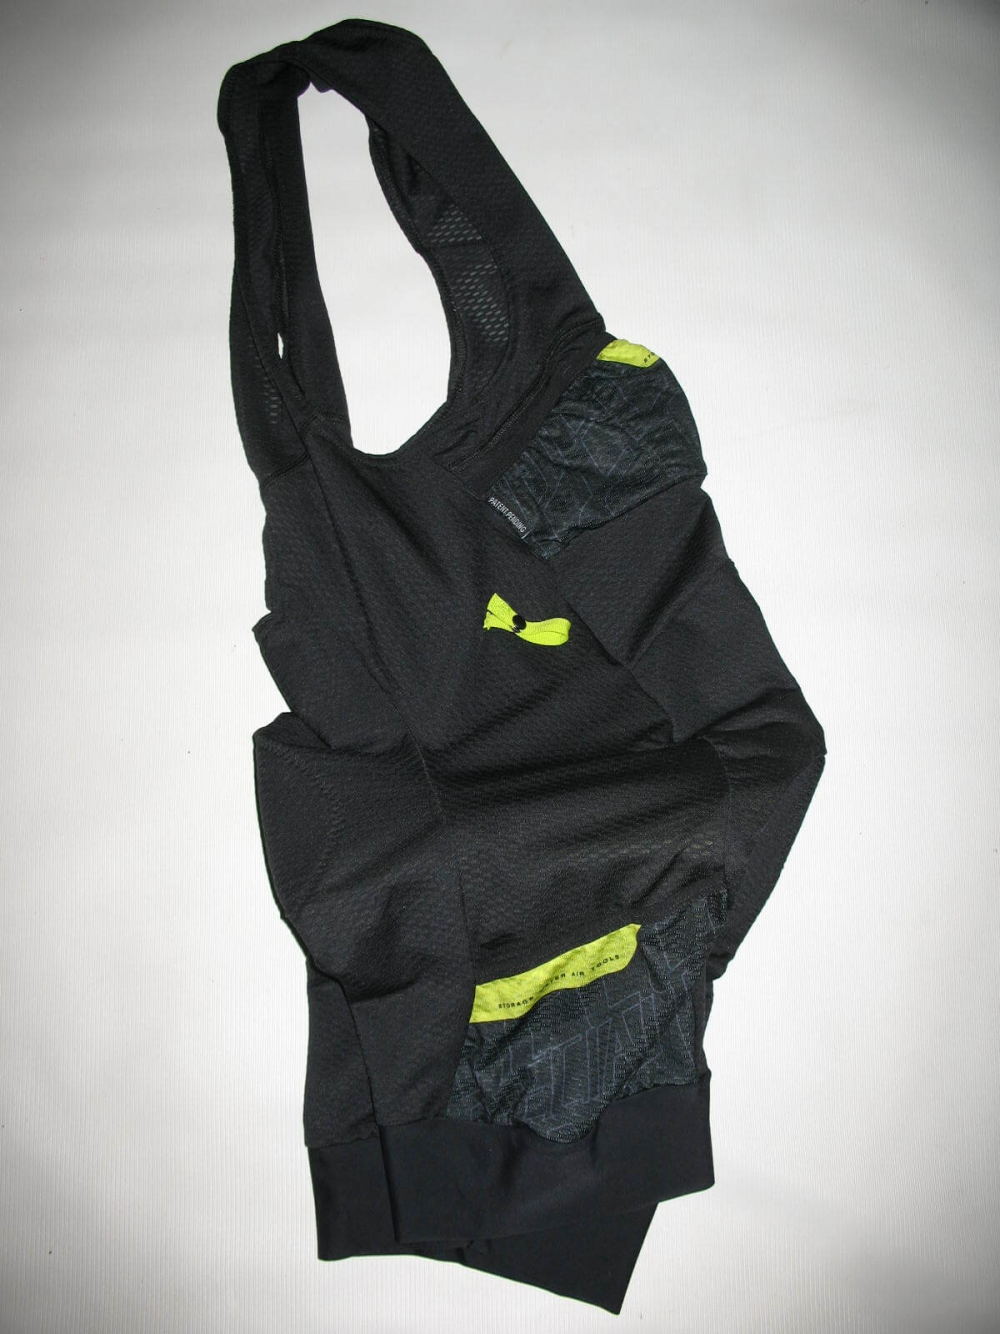 Велошорты SPECIALIZED swat bib shorts (размер 30/S) - 10